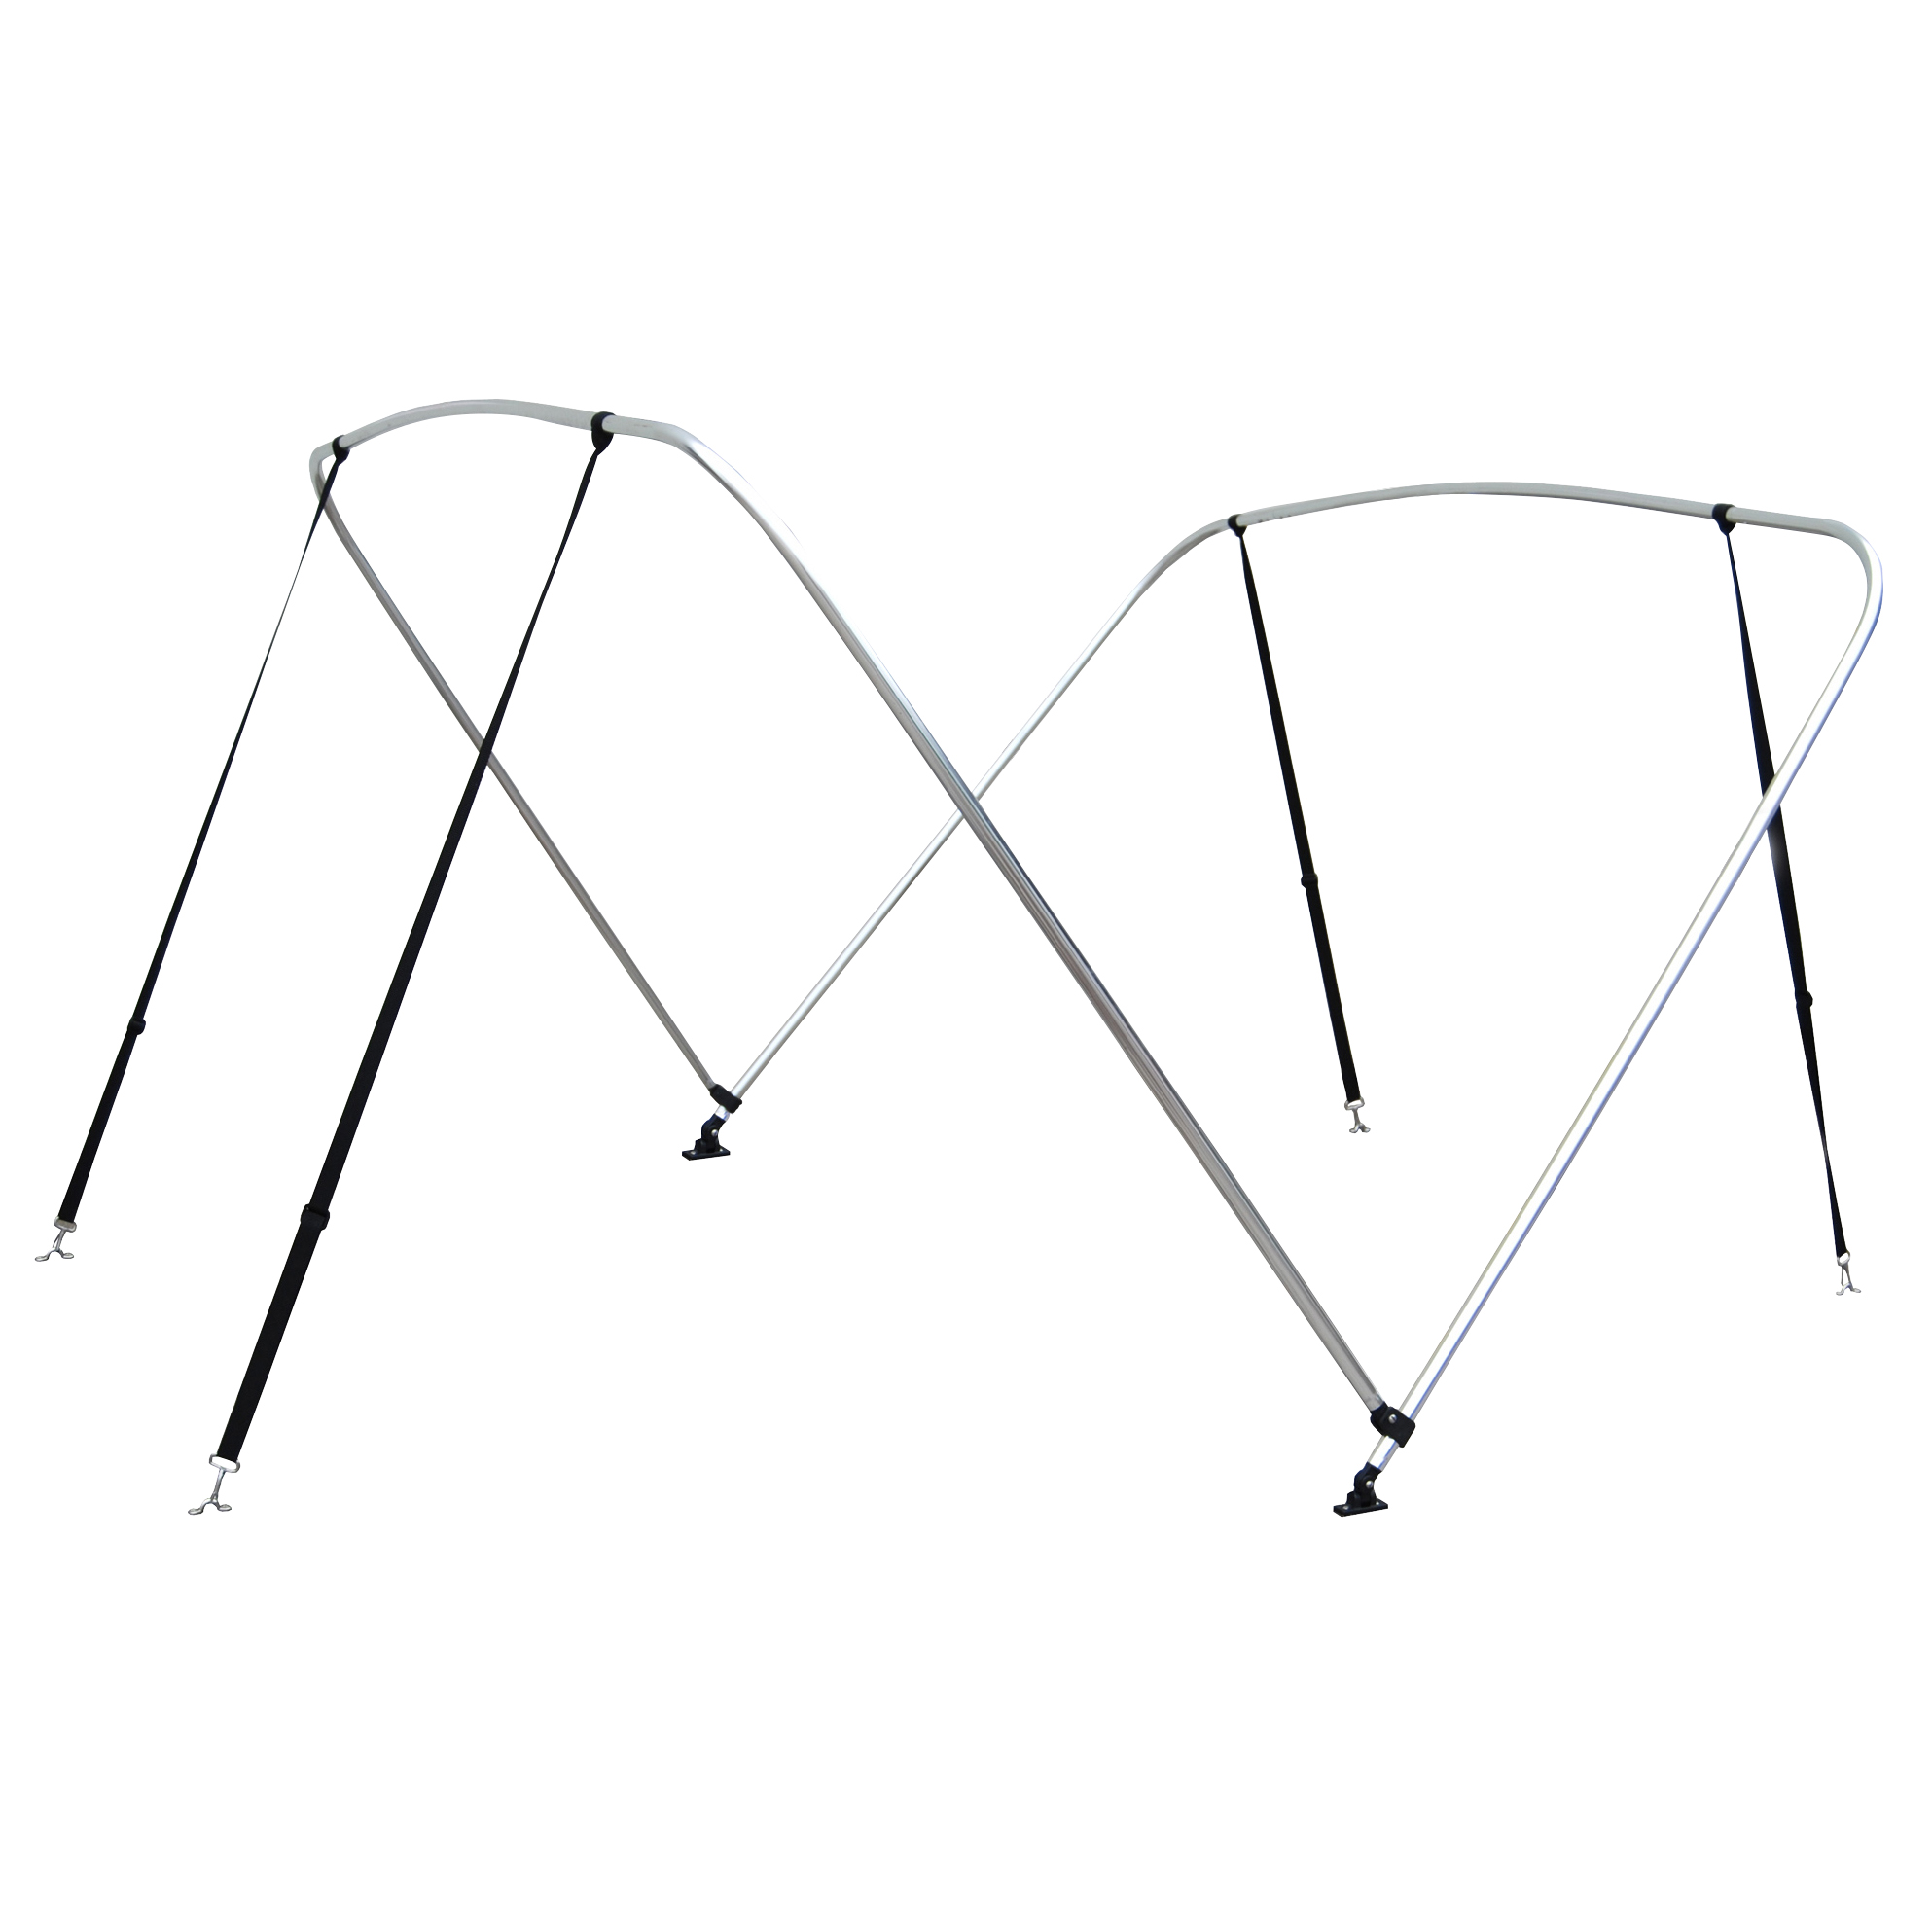 """Shademate Bimini Top 2-Bow Aluminum Frame Only, 5'6""""L x 42""""H, 54""""-60"""" Wide"""